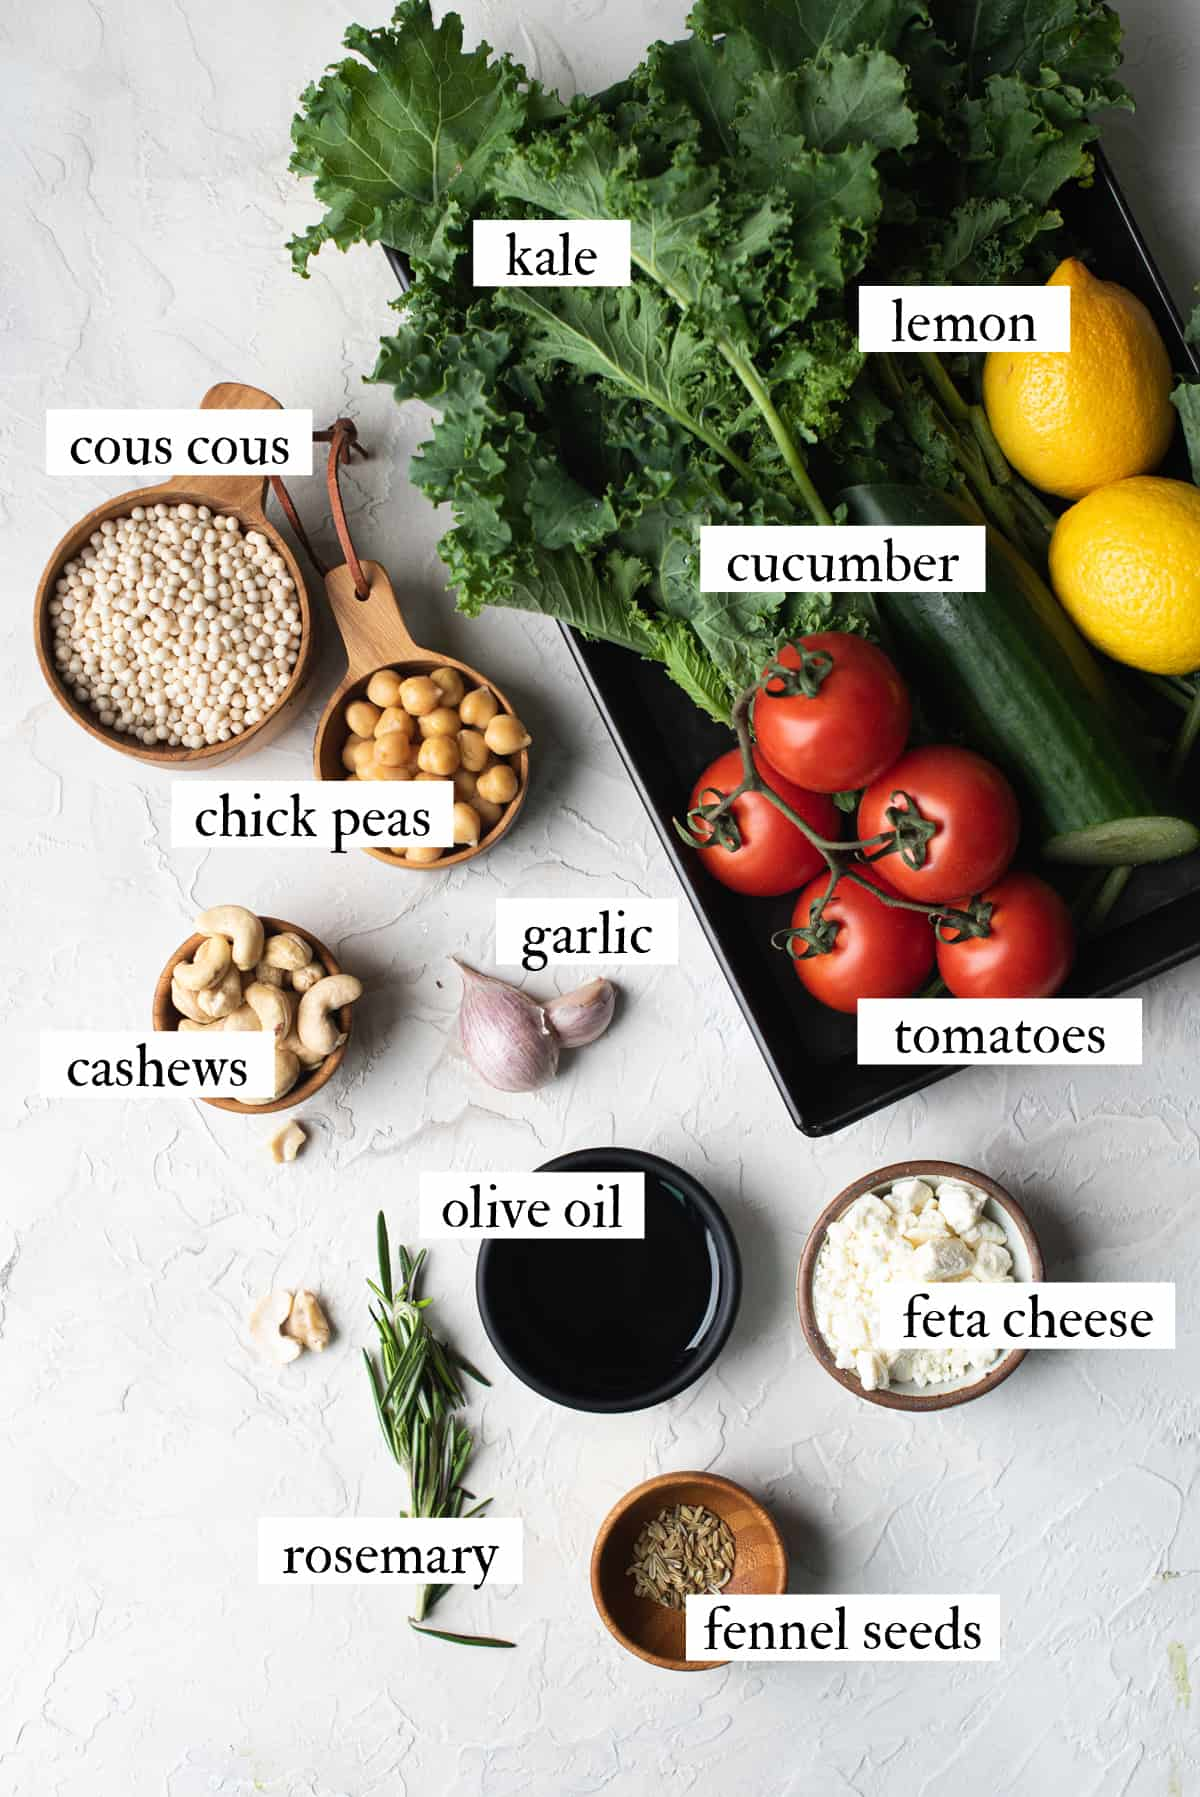 ingredients for kale salad with cous cous